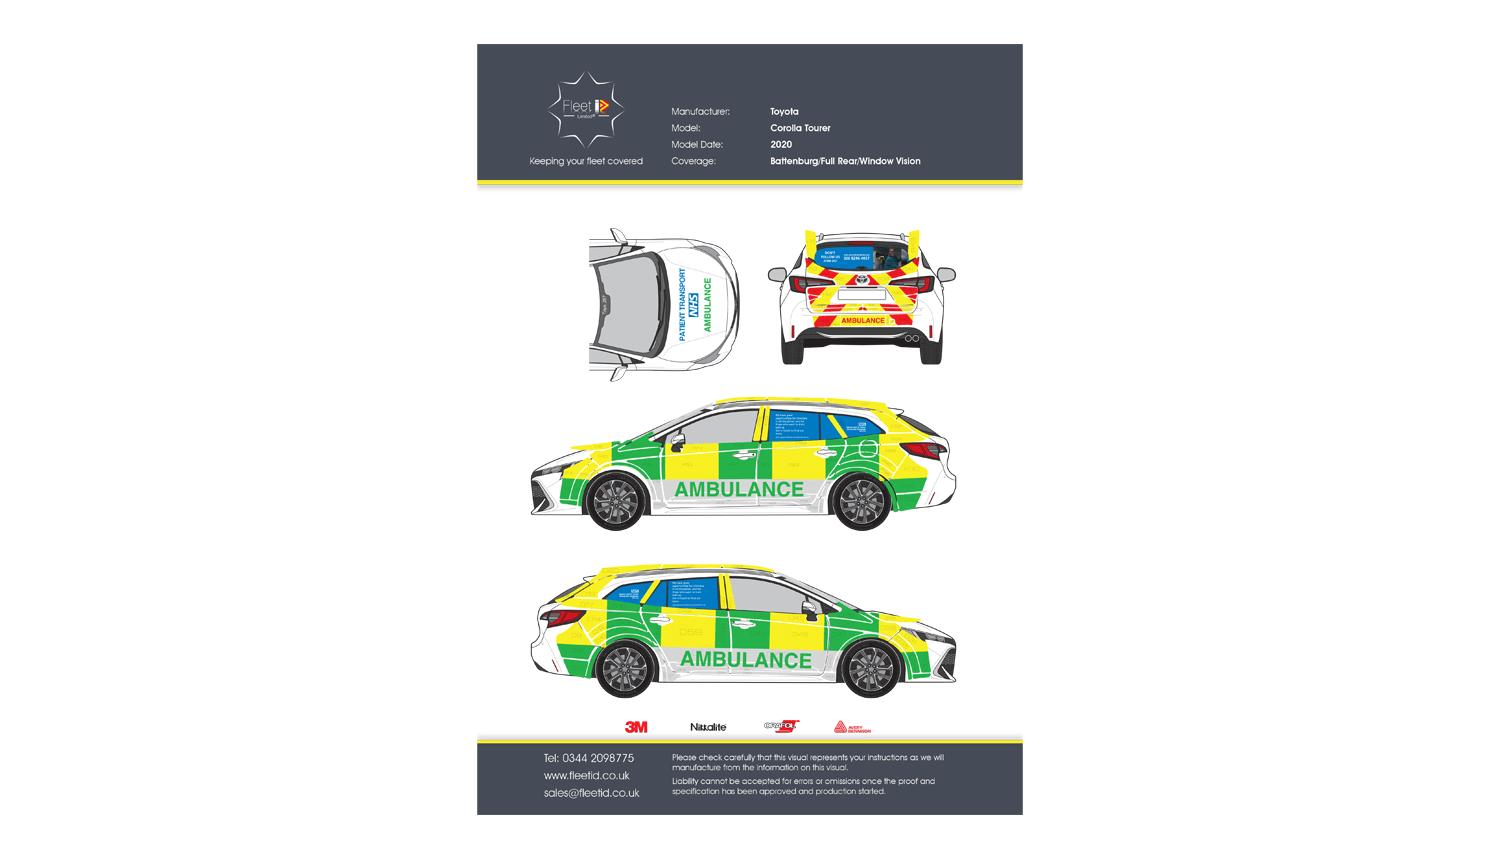 Ambulance livery proof Epsom and St Helier